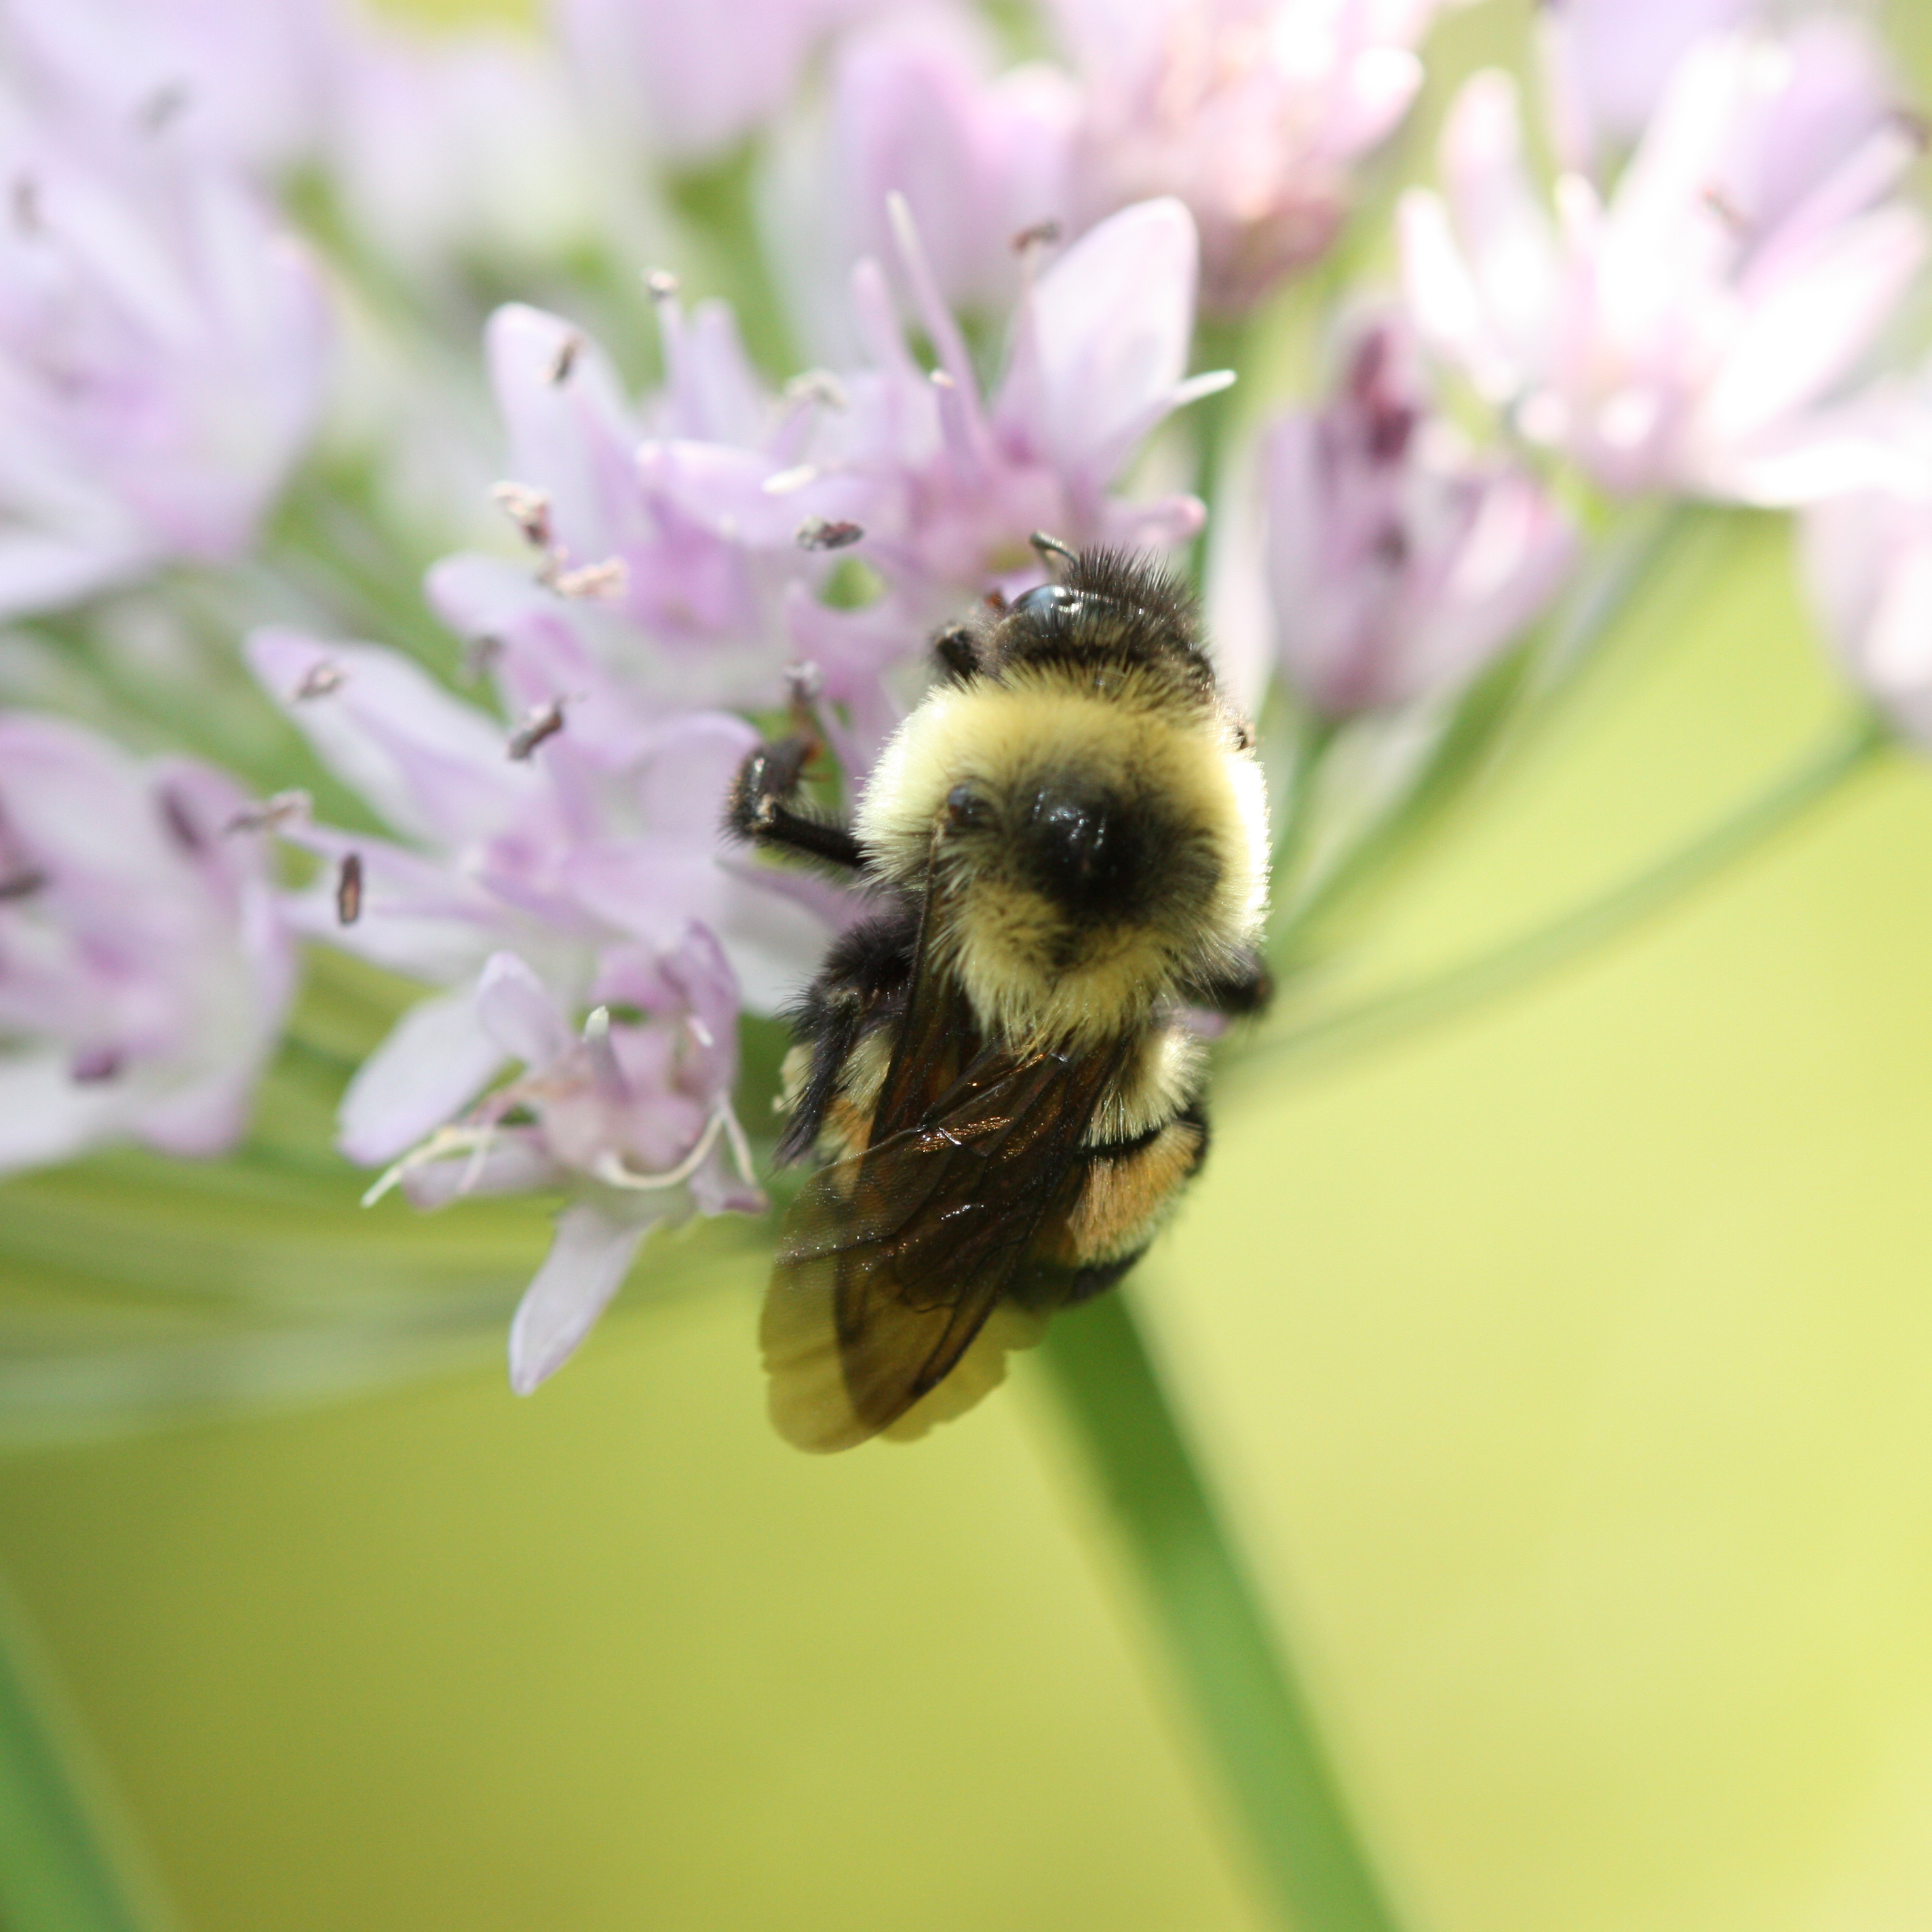 A fuzzy, black and yellow bumble bee with a reddish-brown patch on its back clings to a cluster of pale purple flowers.